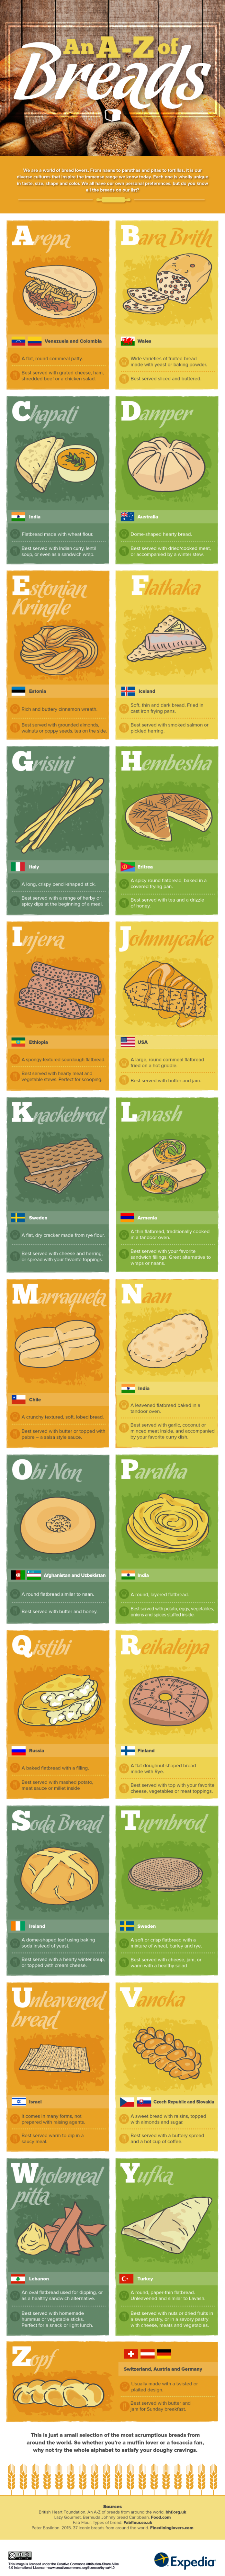 An-A-Z-of-breads-from-around-the-world